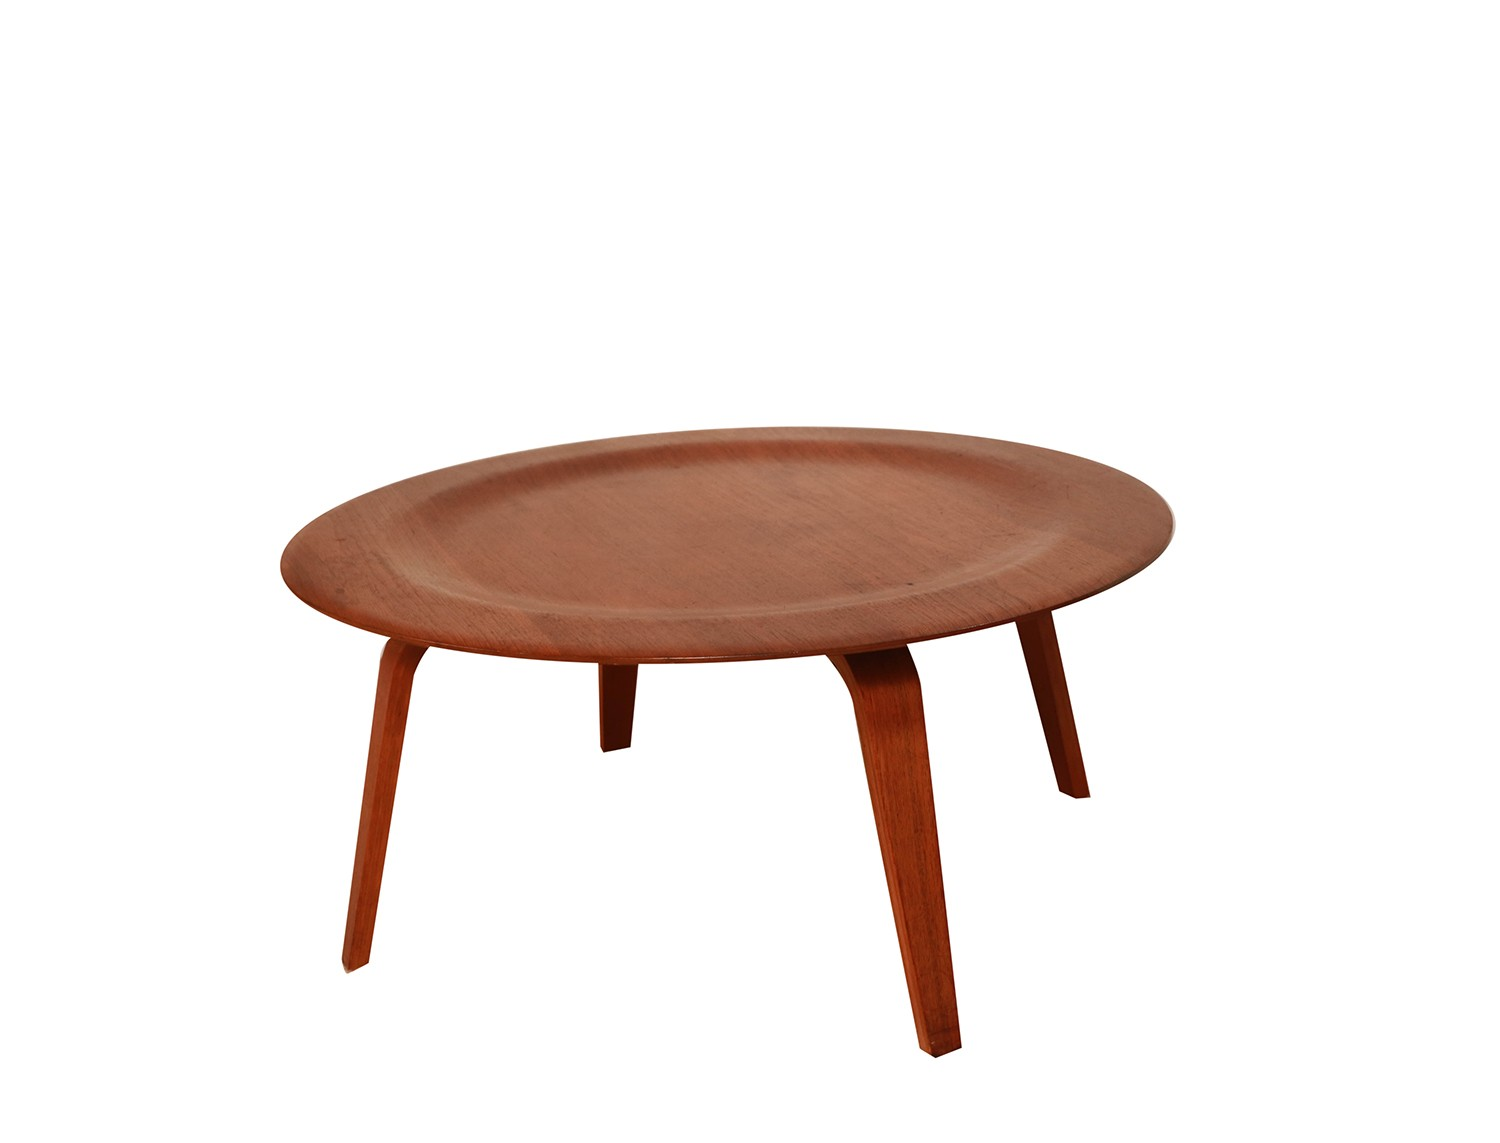 Charles Eames Molded Plywood Ctw Coffee Table For Herman